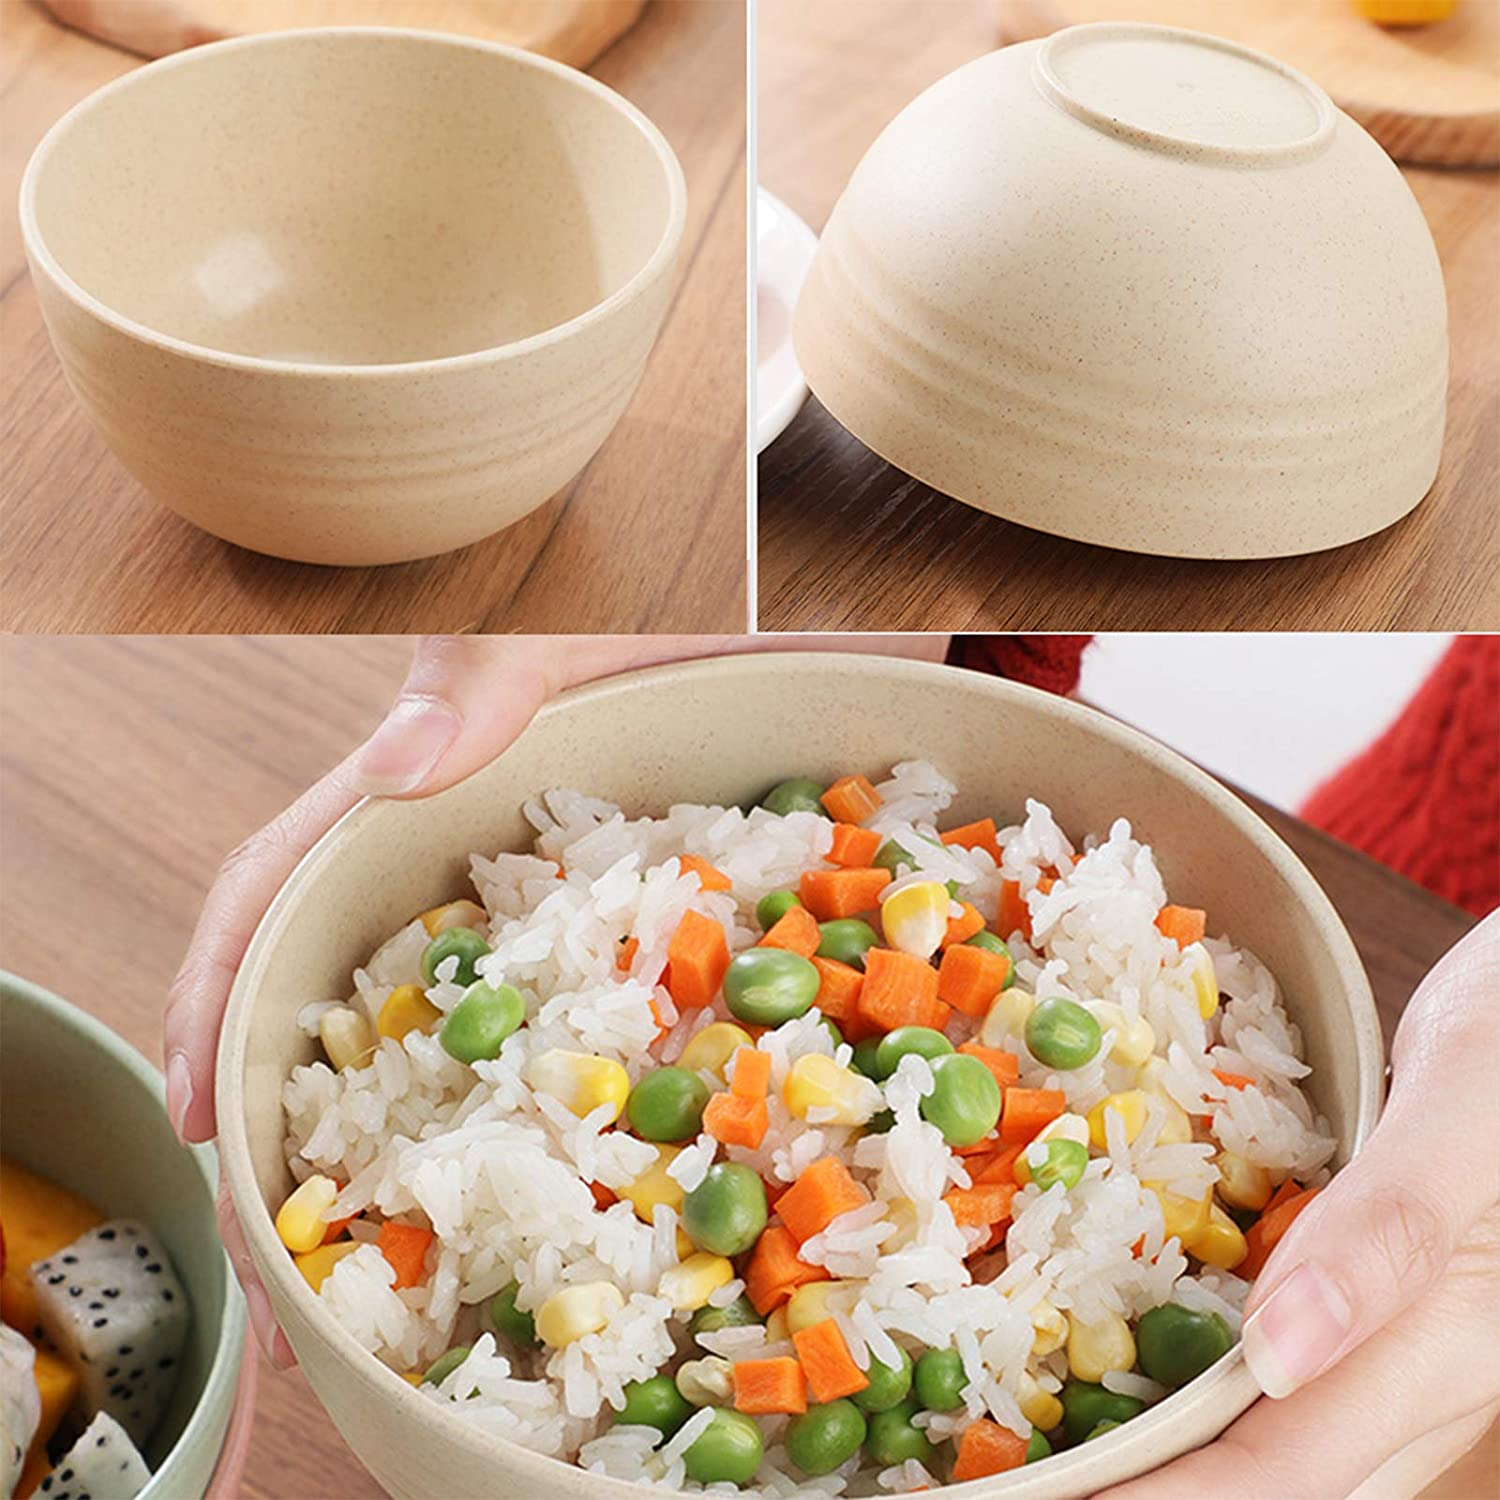 5Pcs Small Food-Safe Lightweight Cereal Bowls for Kids 5 Colours 12cm//4.72in Unbreakable Wheat Straw Bowl for Dishwasher Microwave